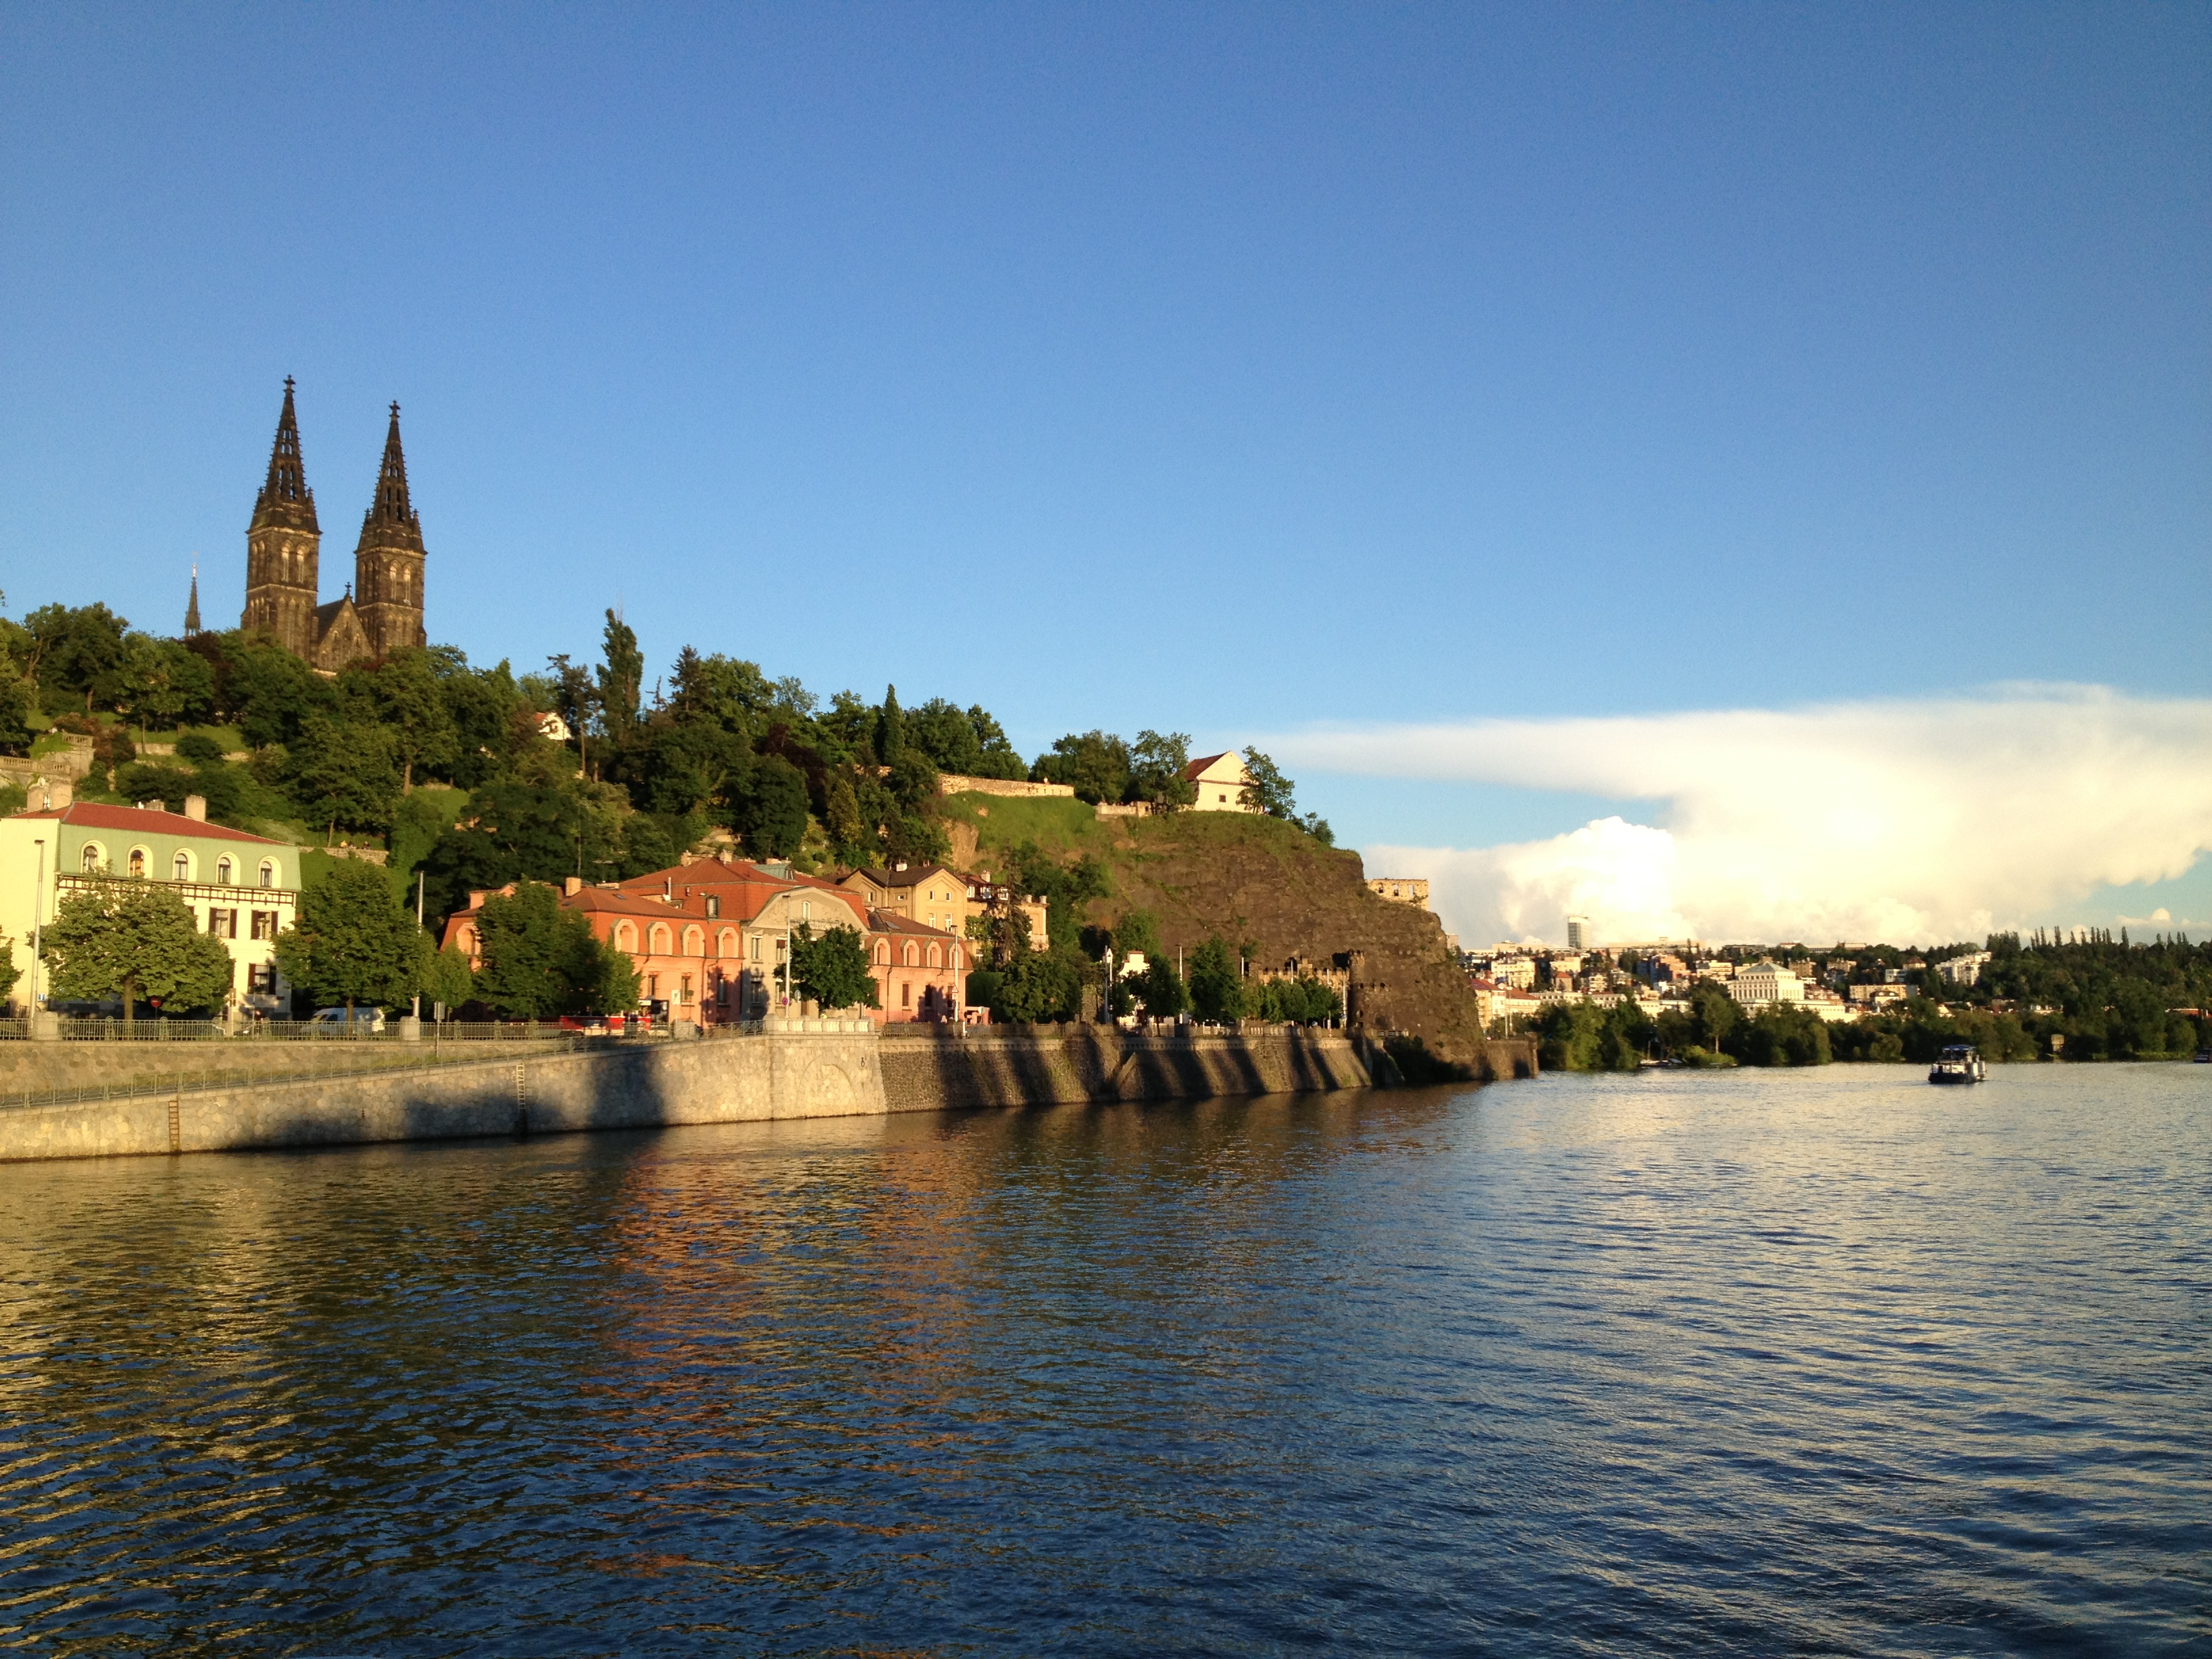 vysehrad from the boat